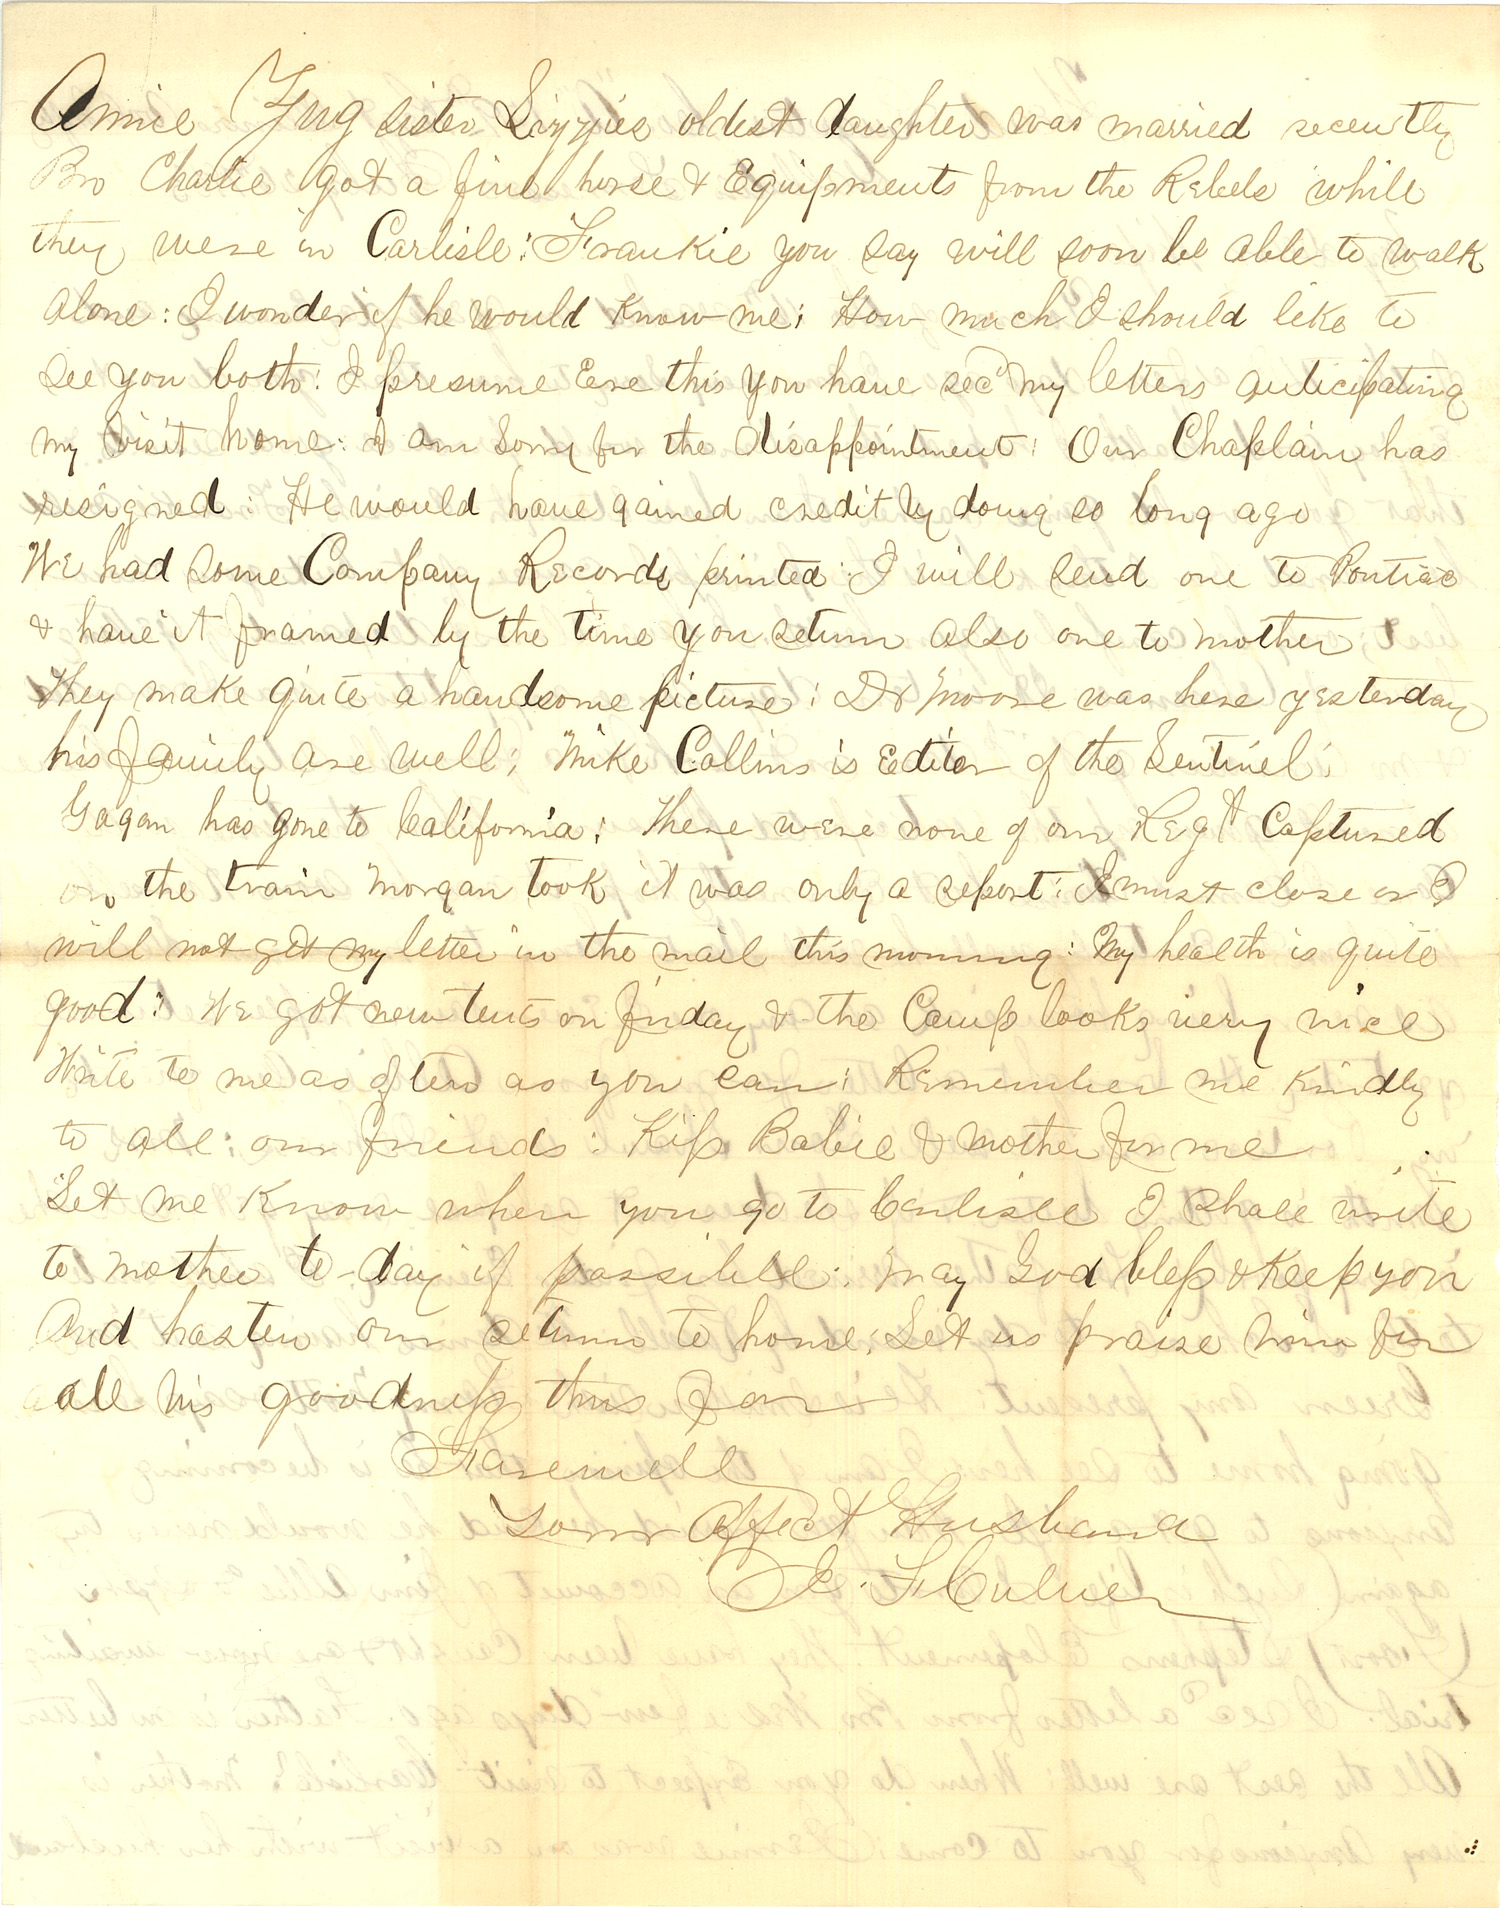 Joseph Culver Letter, July 26, 1863, Page 2